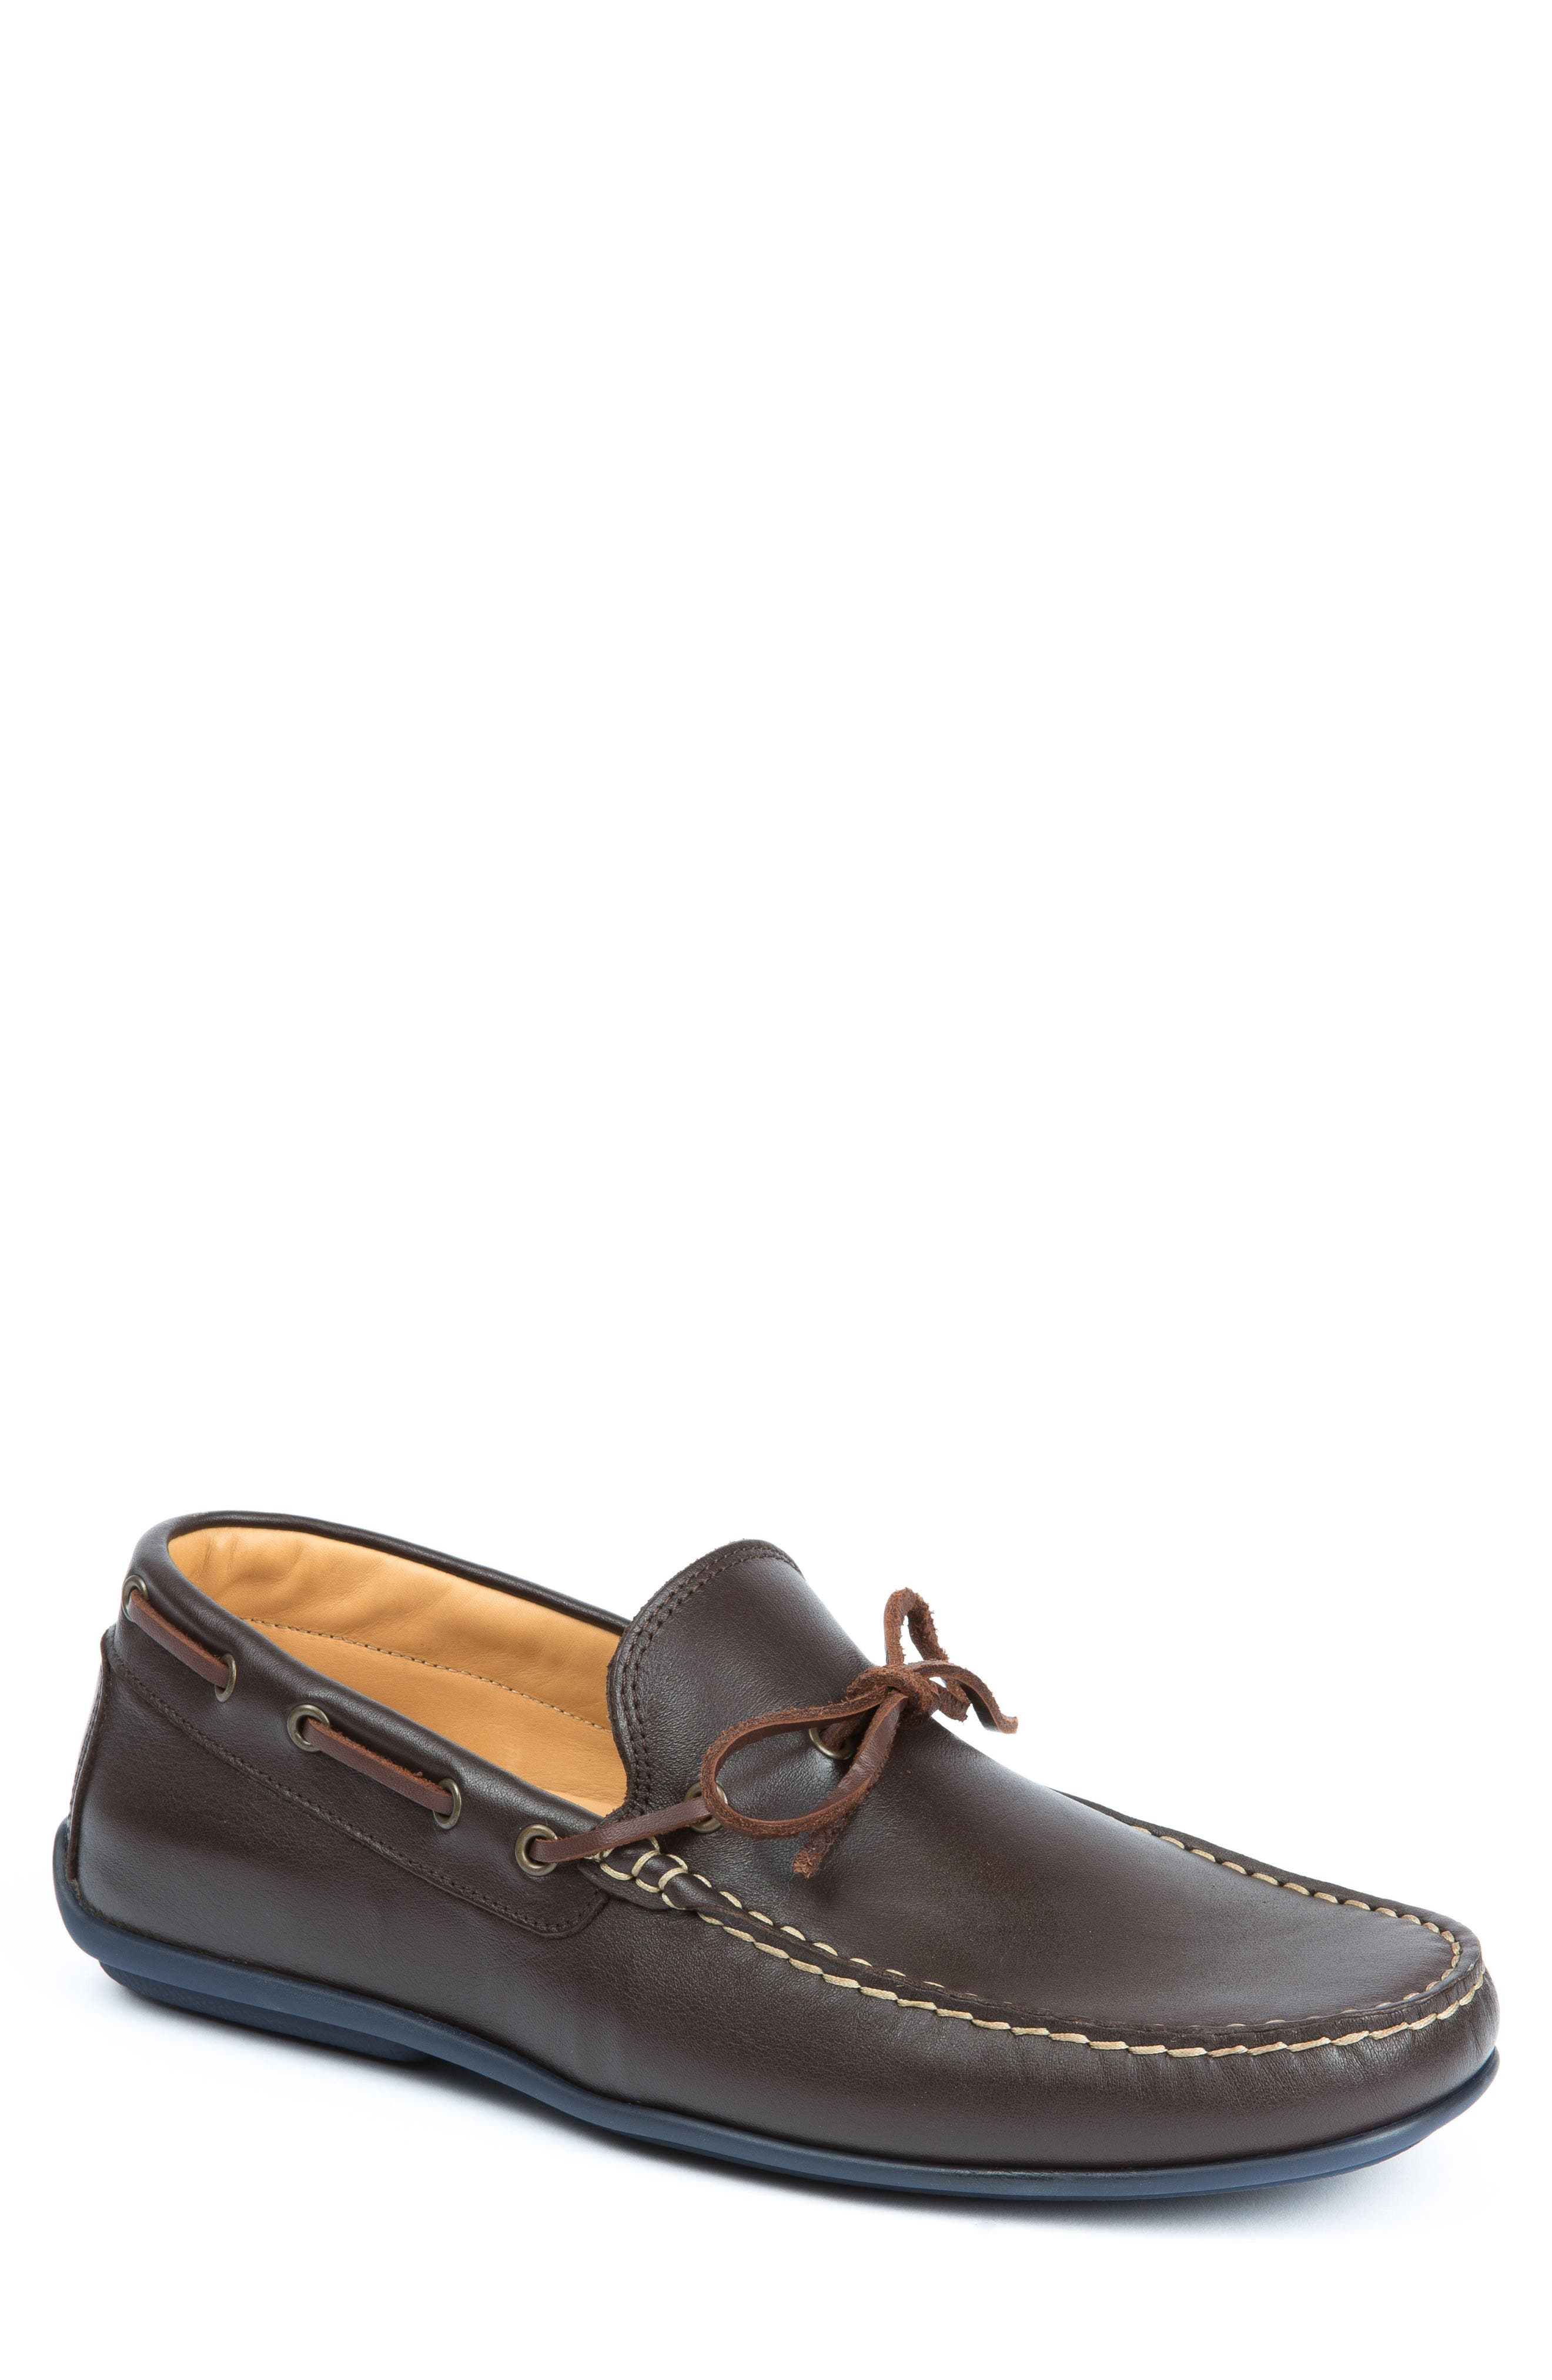 Fillmores Loafer,                         Main,                         color, Brown Leather/ Natural/ Navy